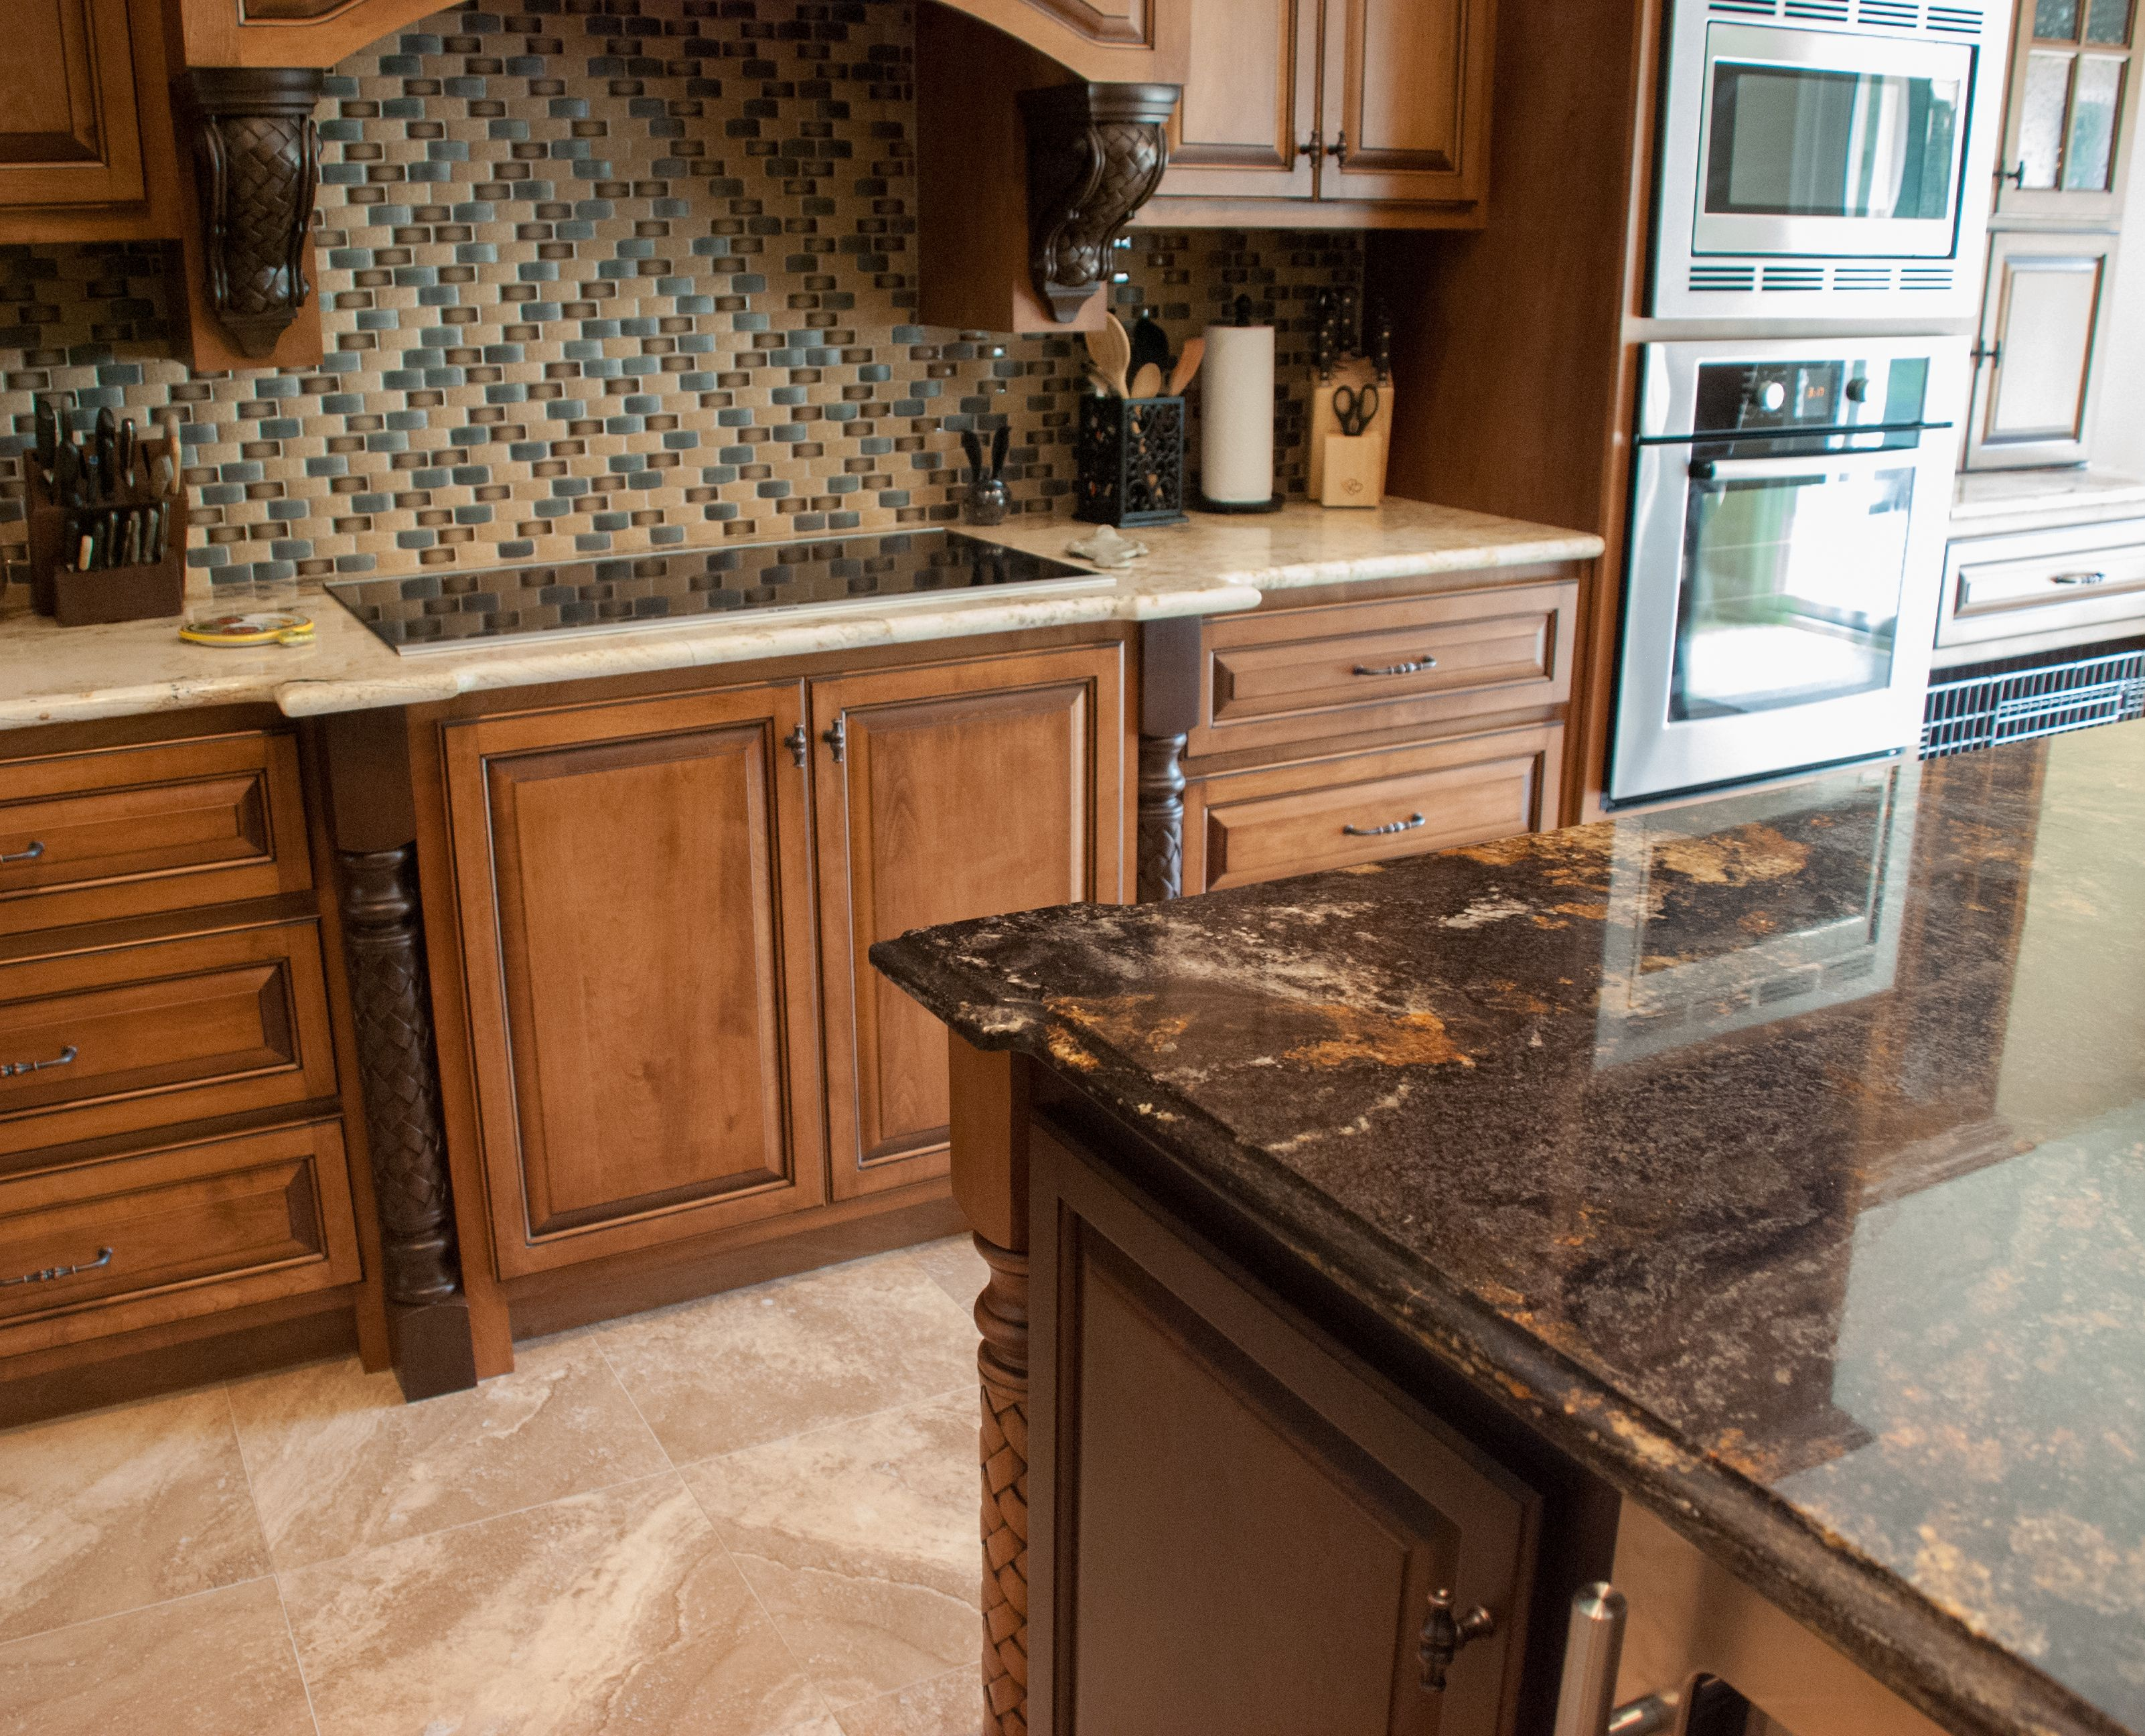 Images Of Granite Countertops In Kitchen Contrasting Island And Main Countertops Granite Kitchen